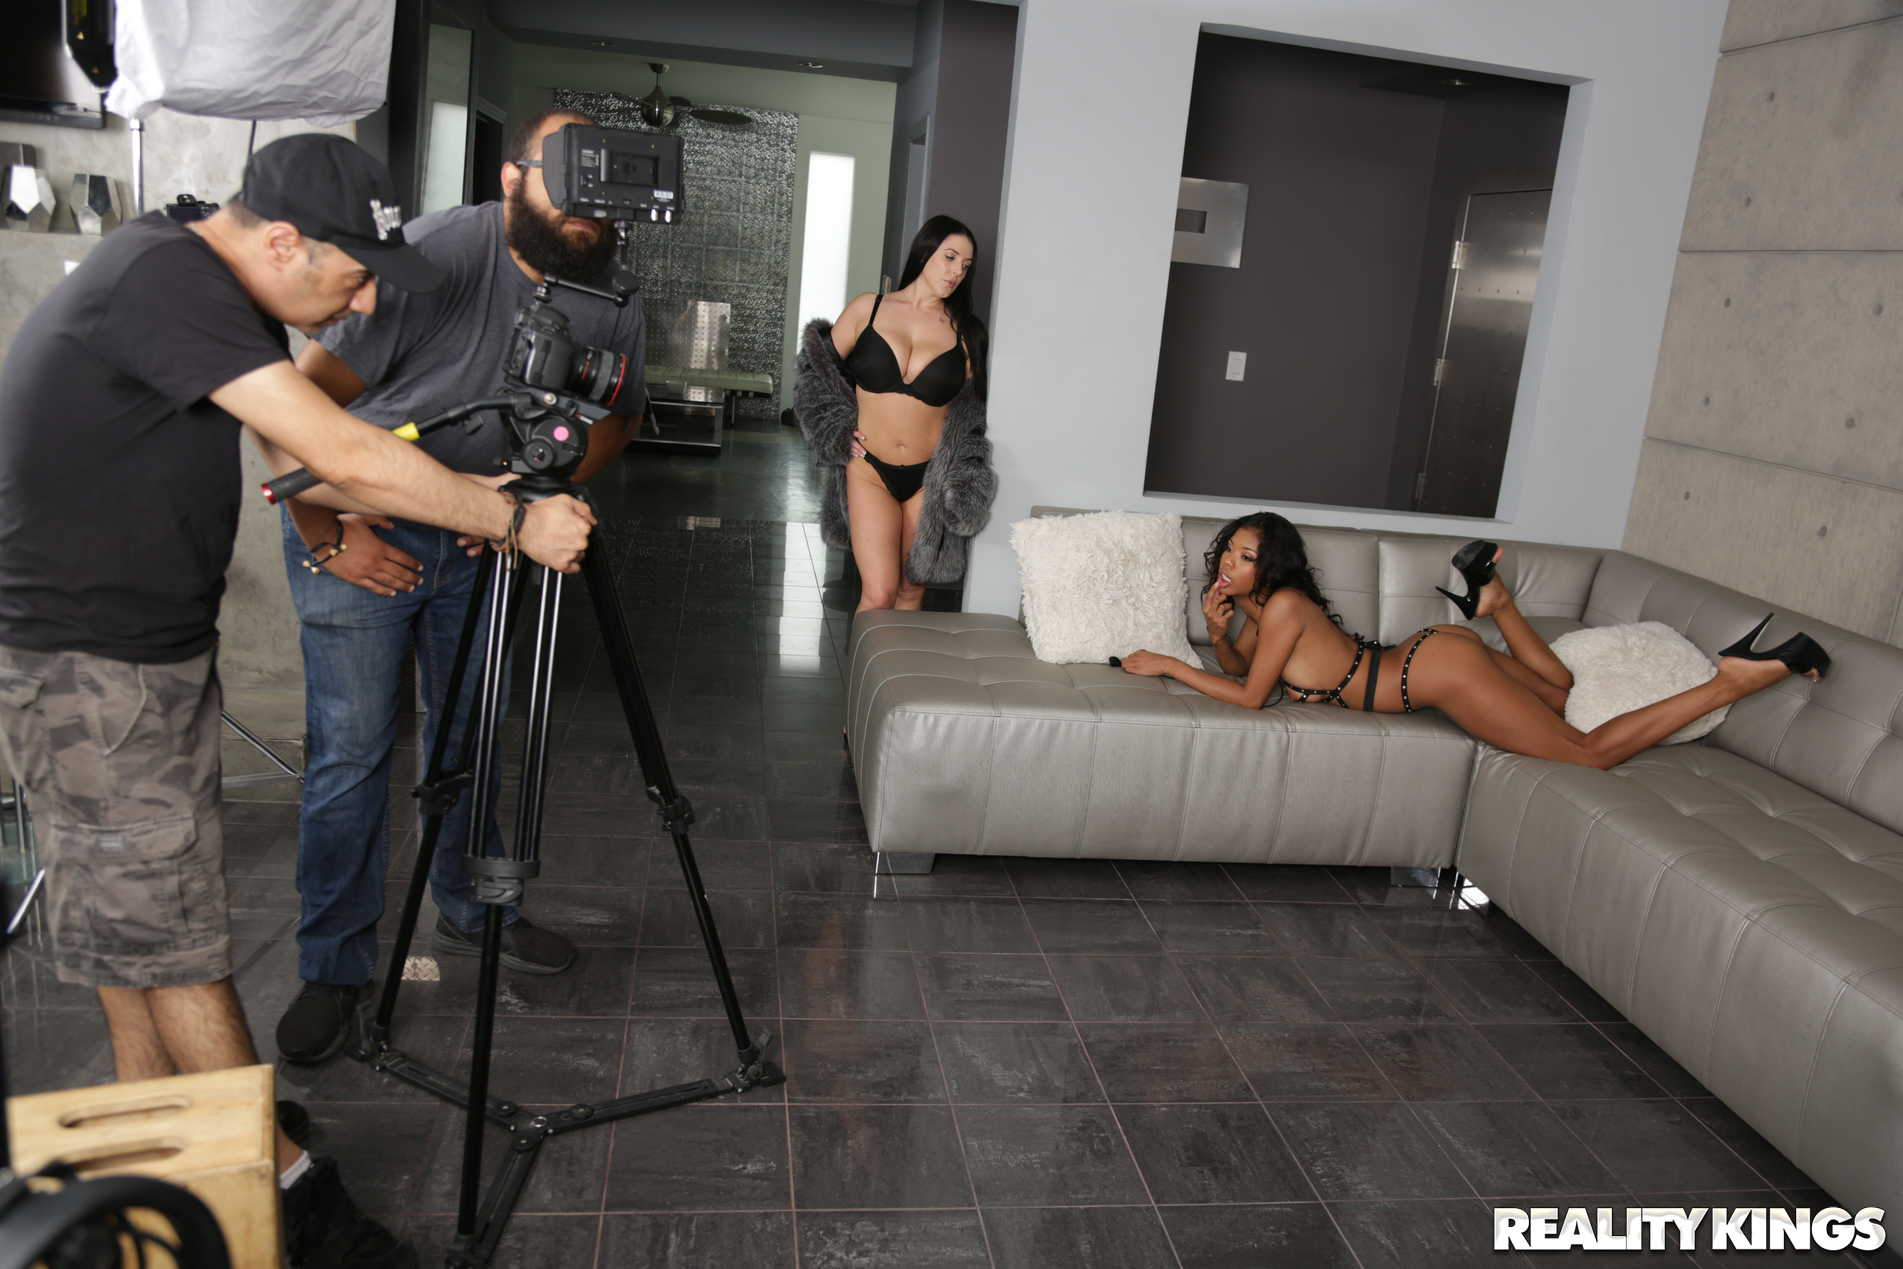 Reality Kings 'Meat And Greet' starring Angela White (Photo 144)